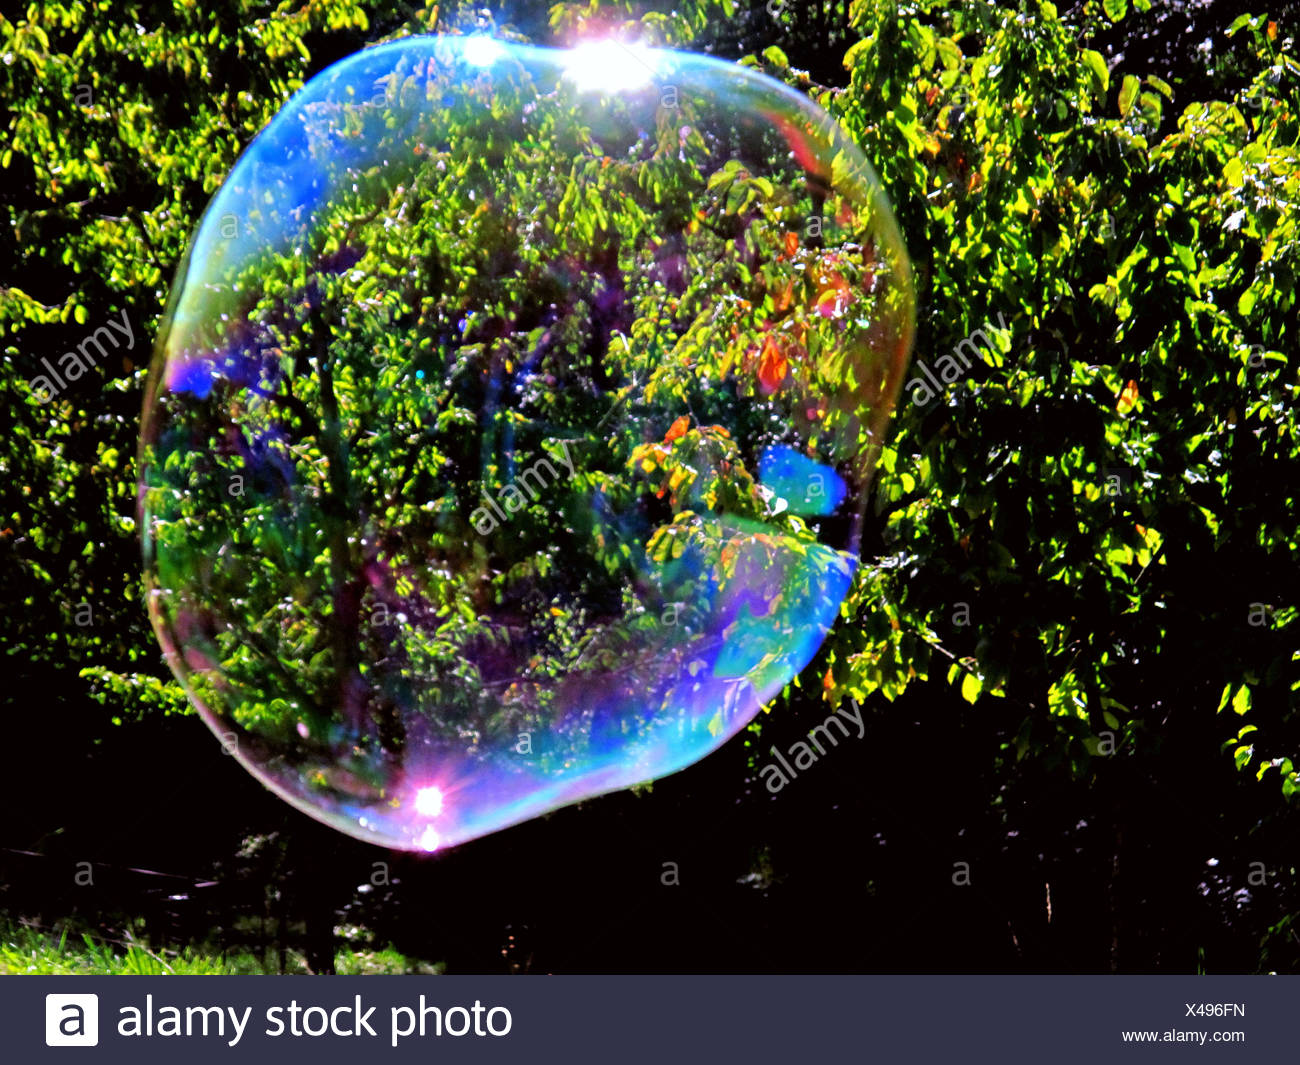 Soap bubble, bubble, reflection, bushes, thicket, sunrays, reflection, float Stock Photo